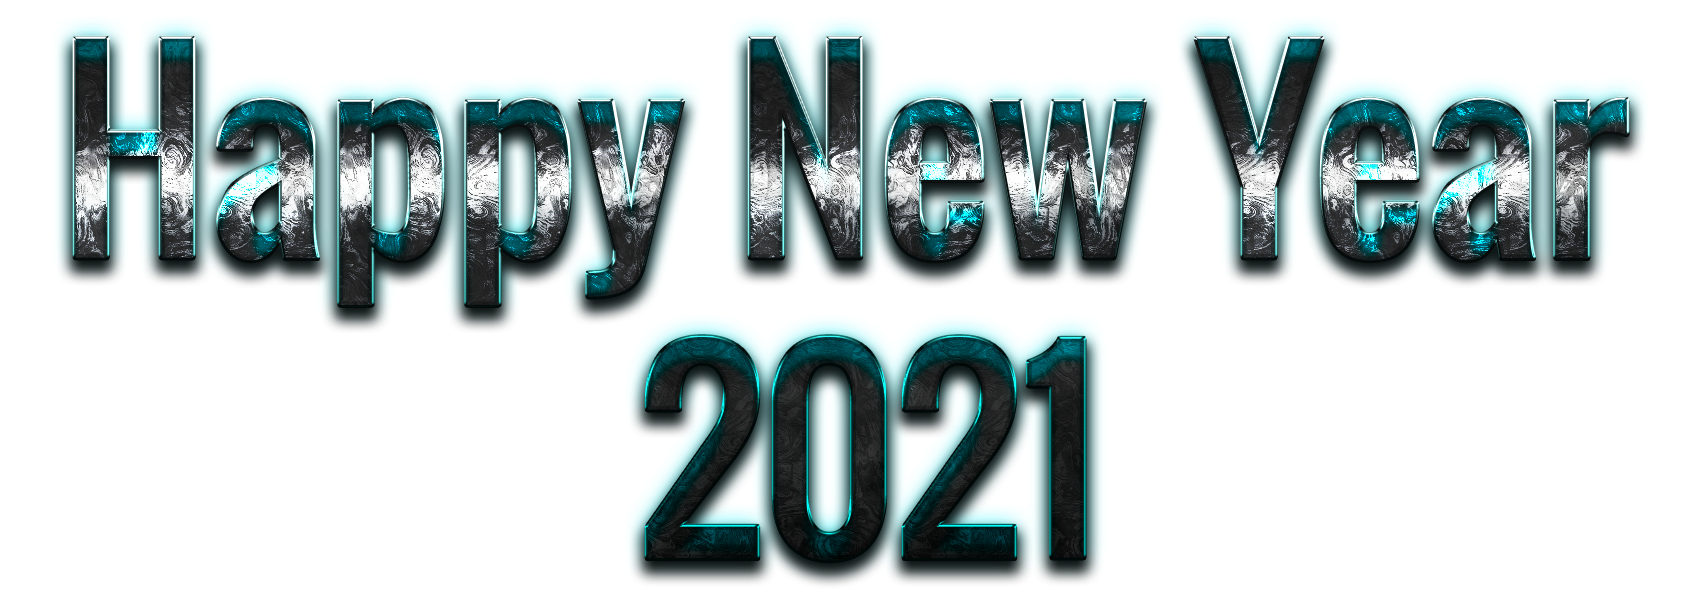 2021 transparent happy new year celebarete png #41567